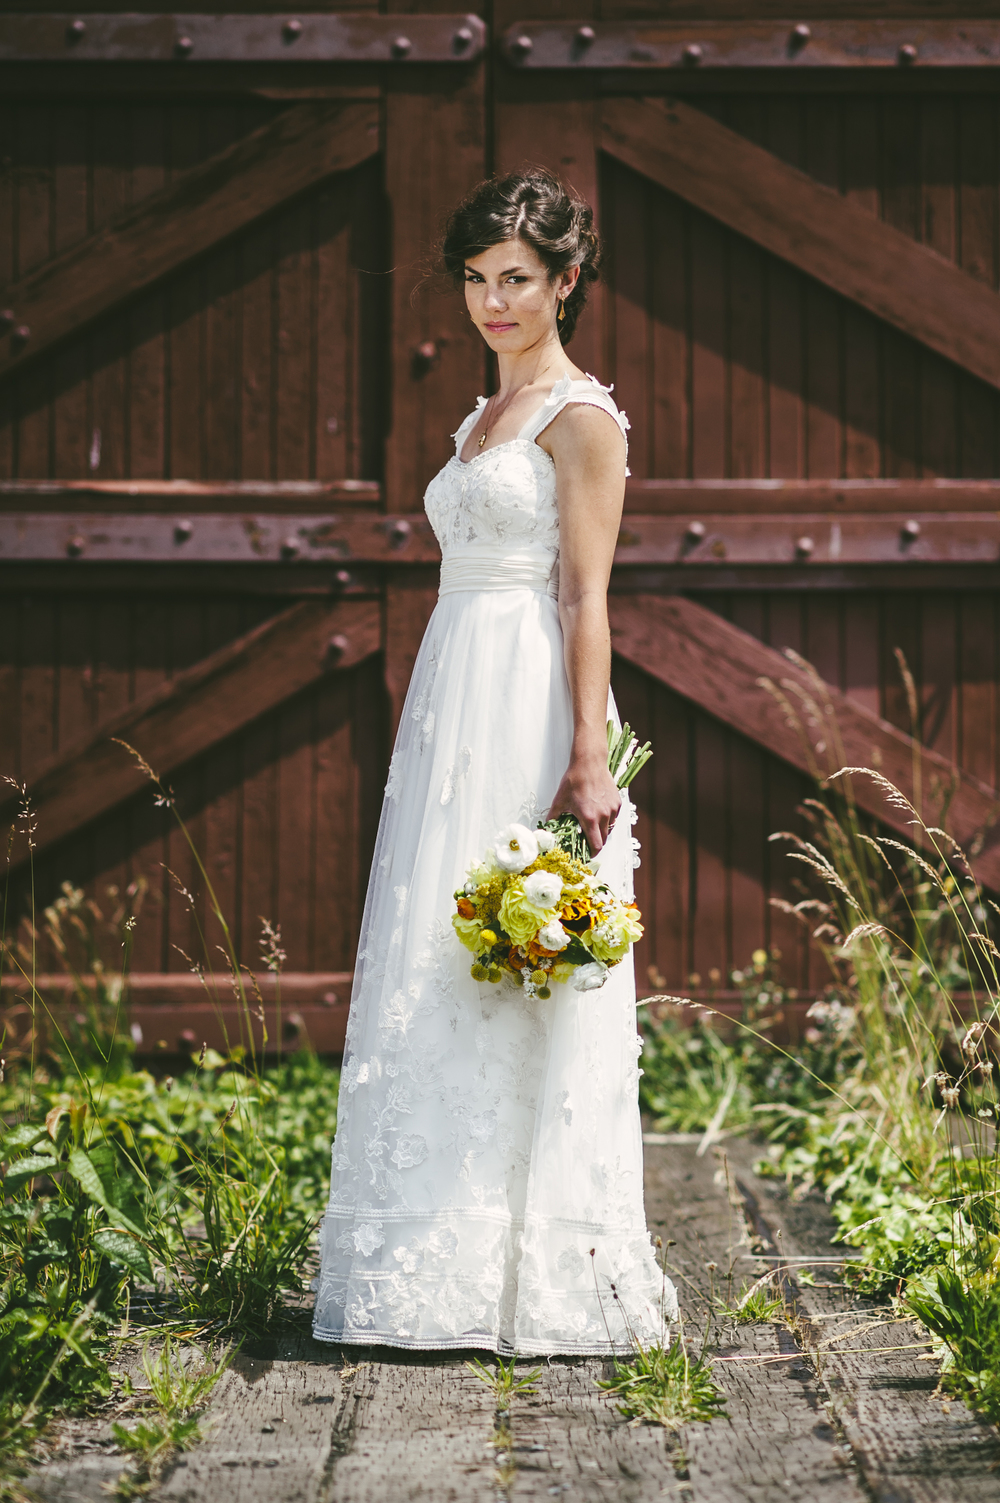 © Dallas Kolotylo Photography - 467.JPG